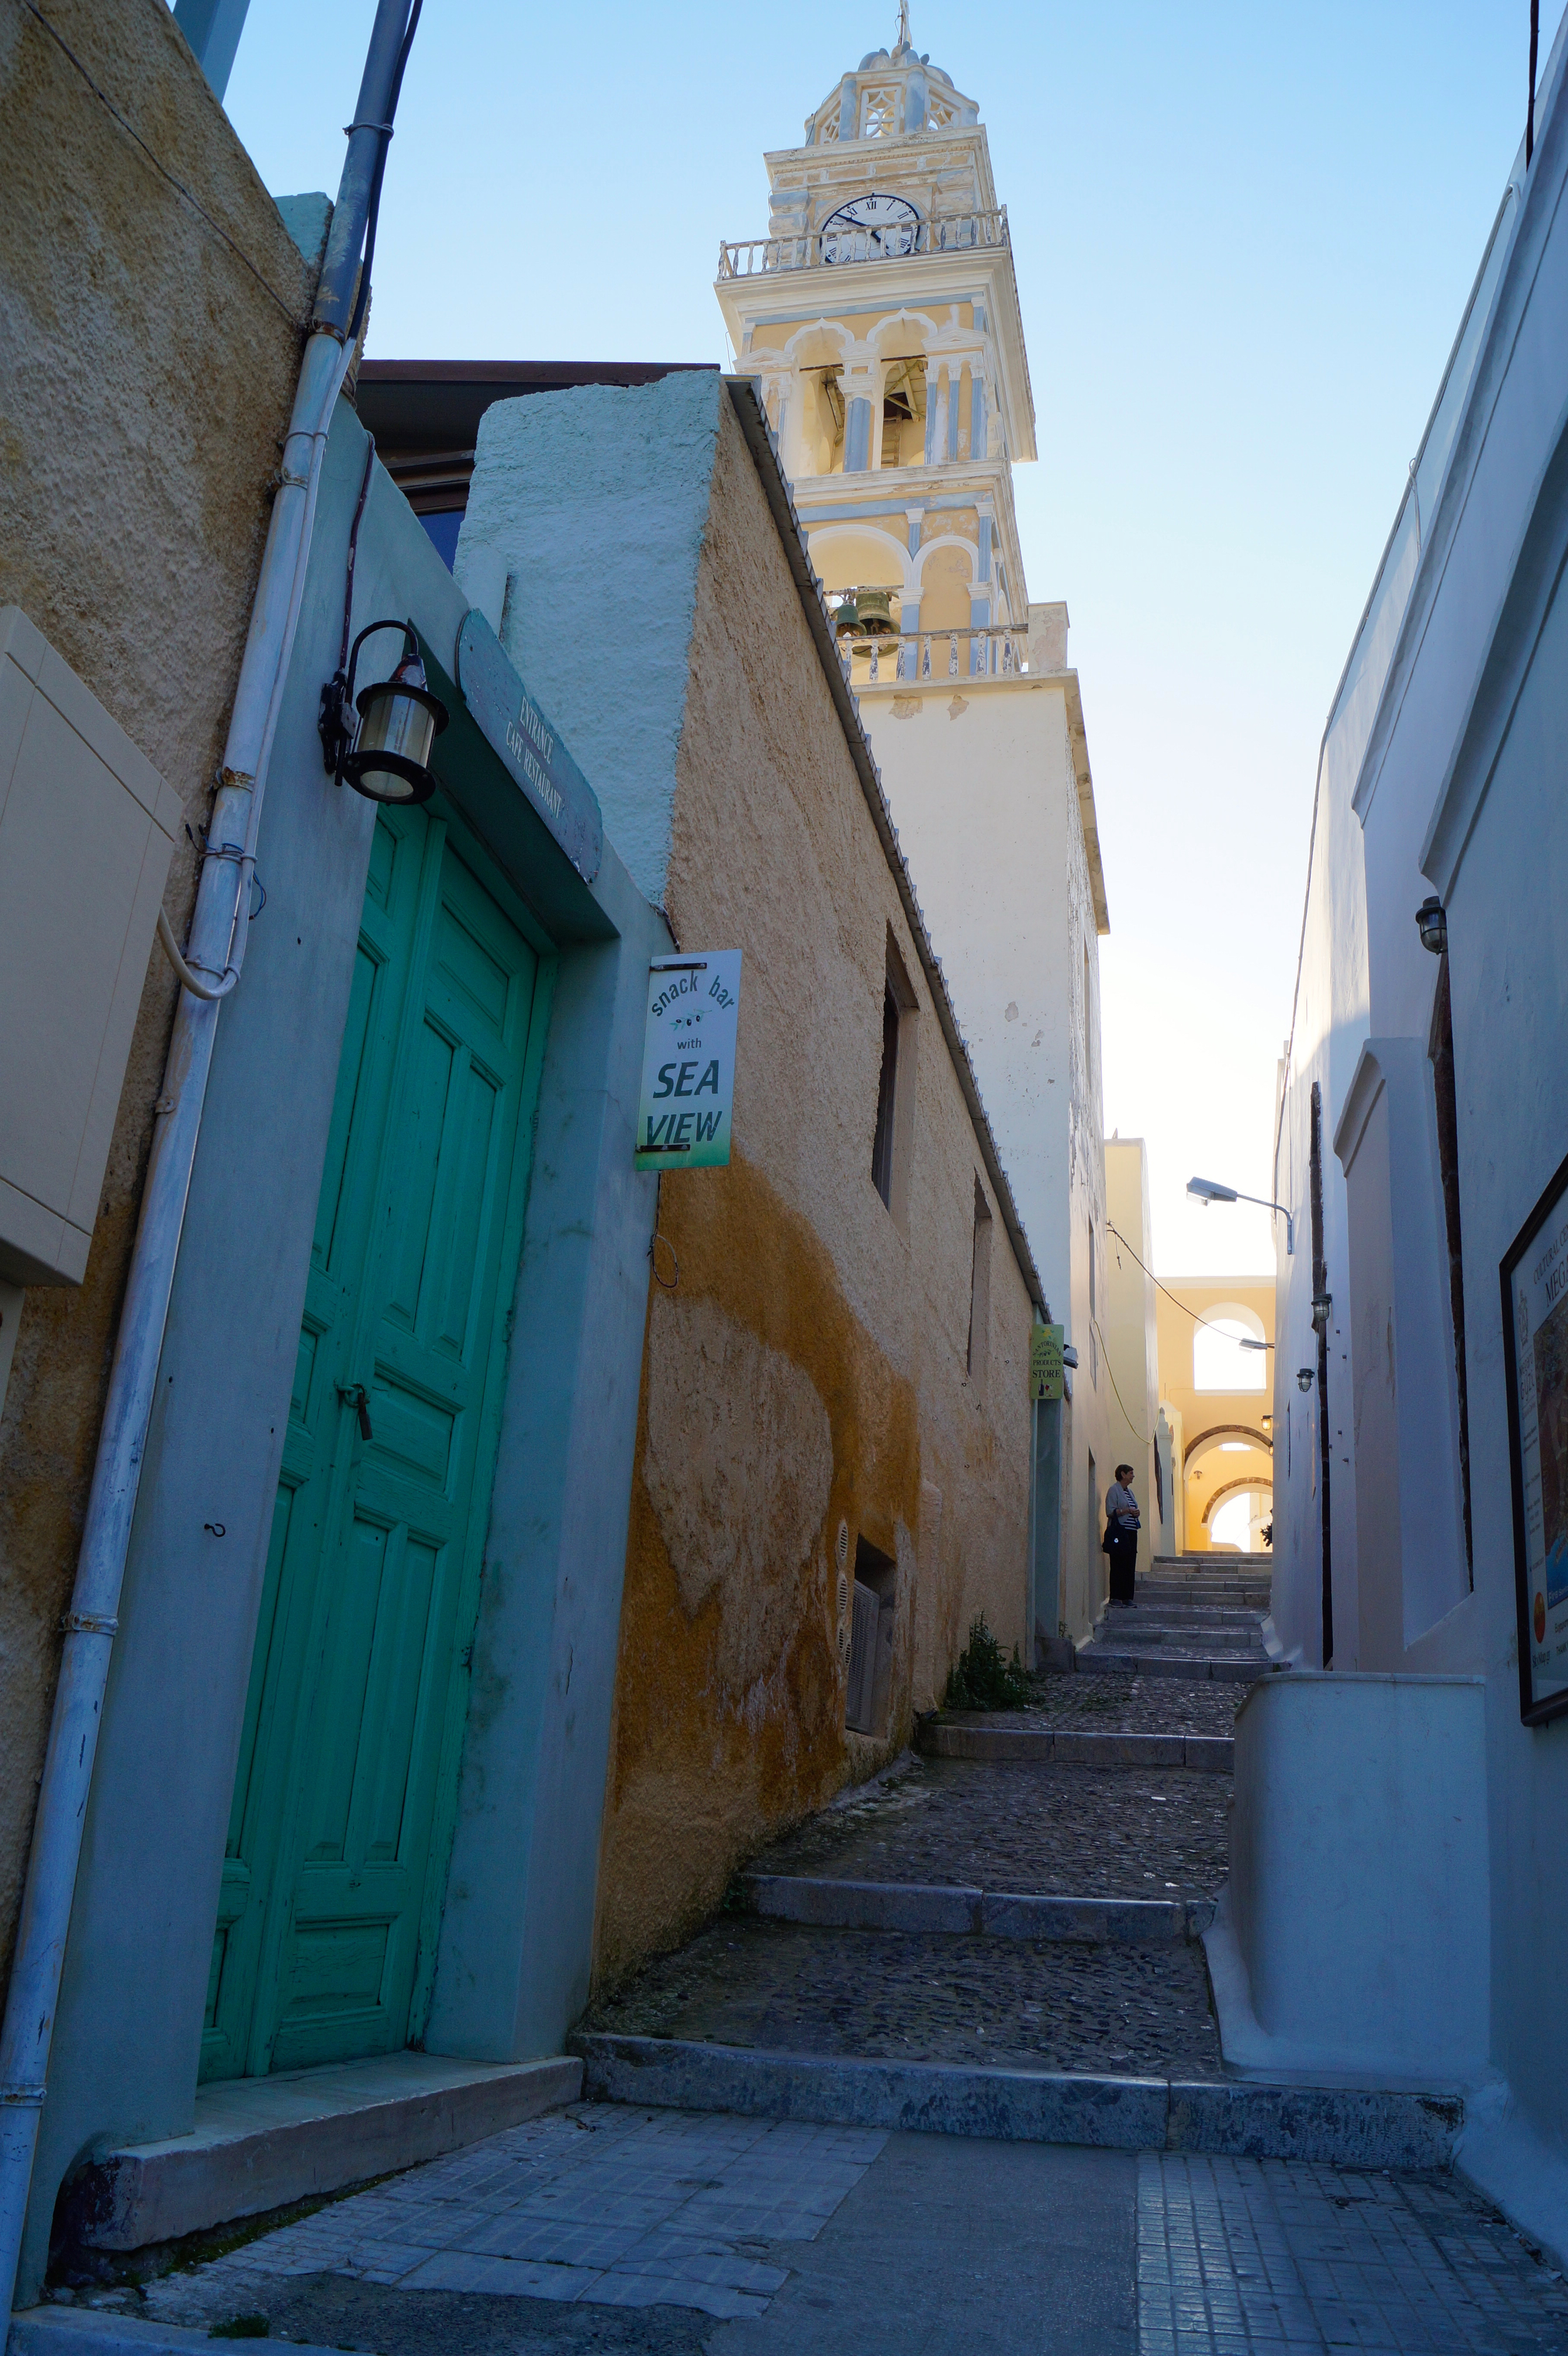 The narrow streets and alleyways criss-cross the towns with many shops and eateries along them.